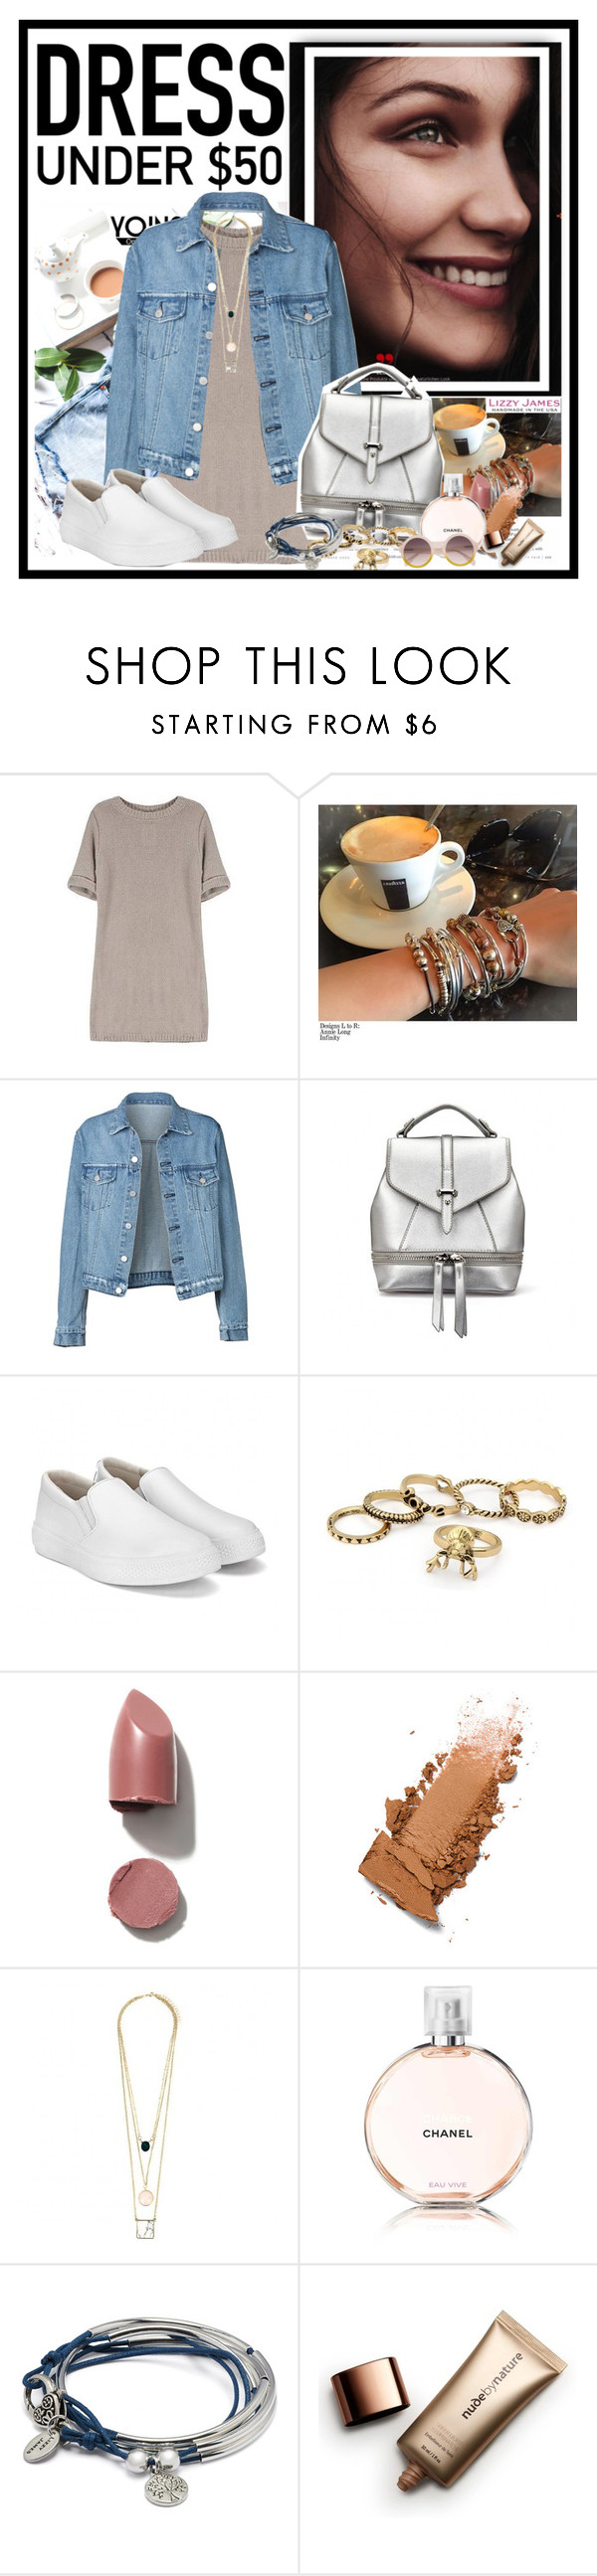 """Yoins 3..."" by cindy88 ❤ liked on Polyvore featuring Lizzy James, Chanel, Nude by Nature, yoins, yoinscollection, loveyoins, Dressunder50 and lizzyjames"